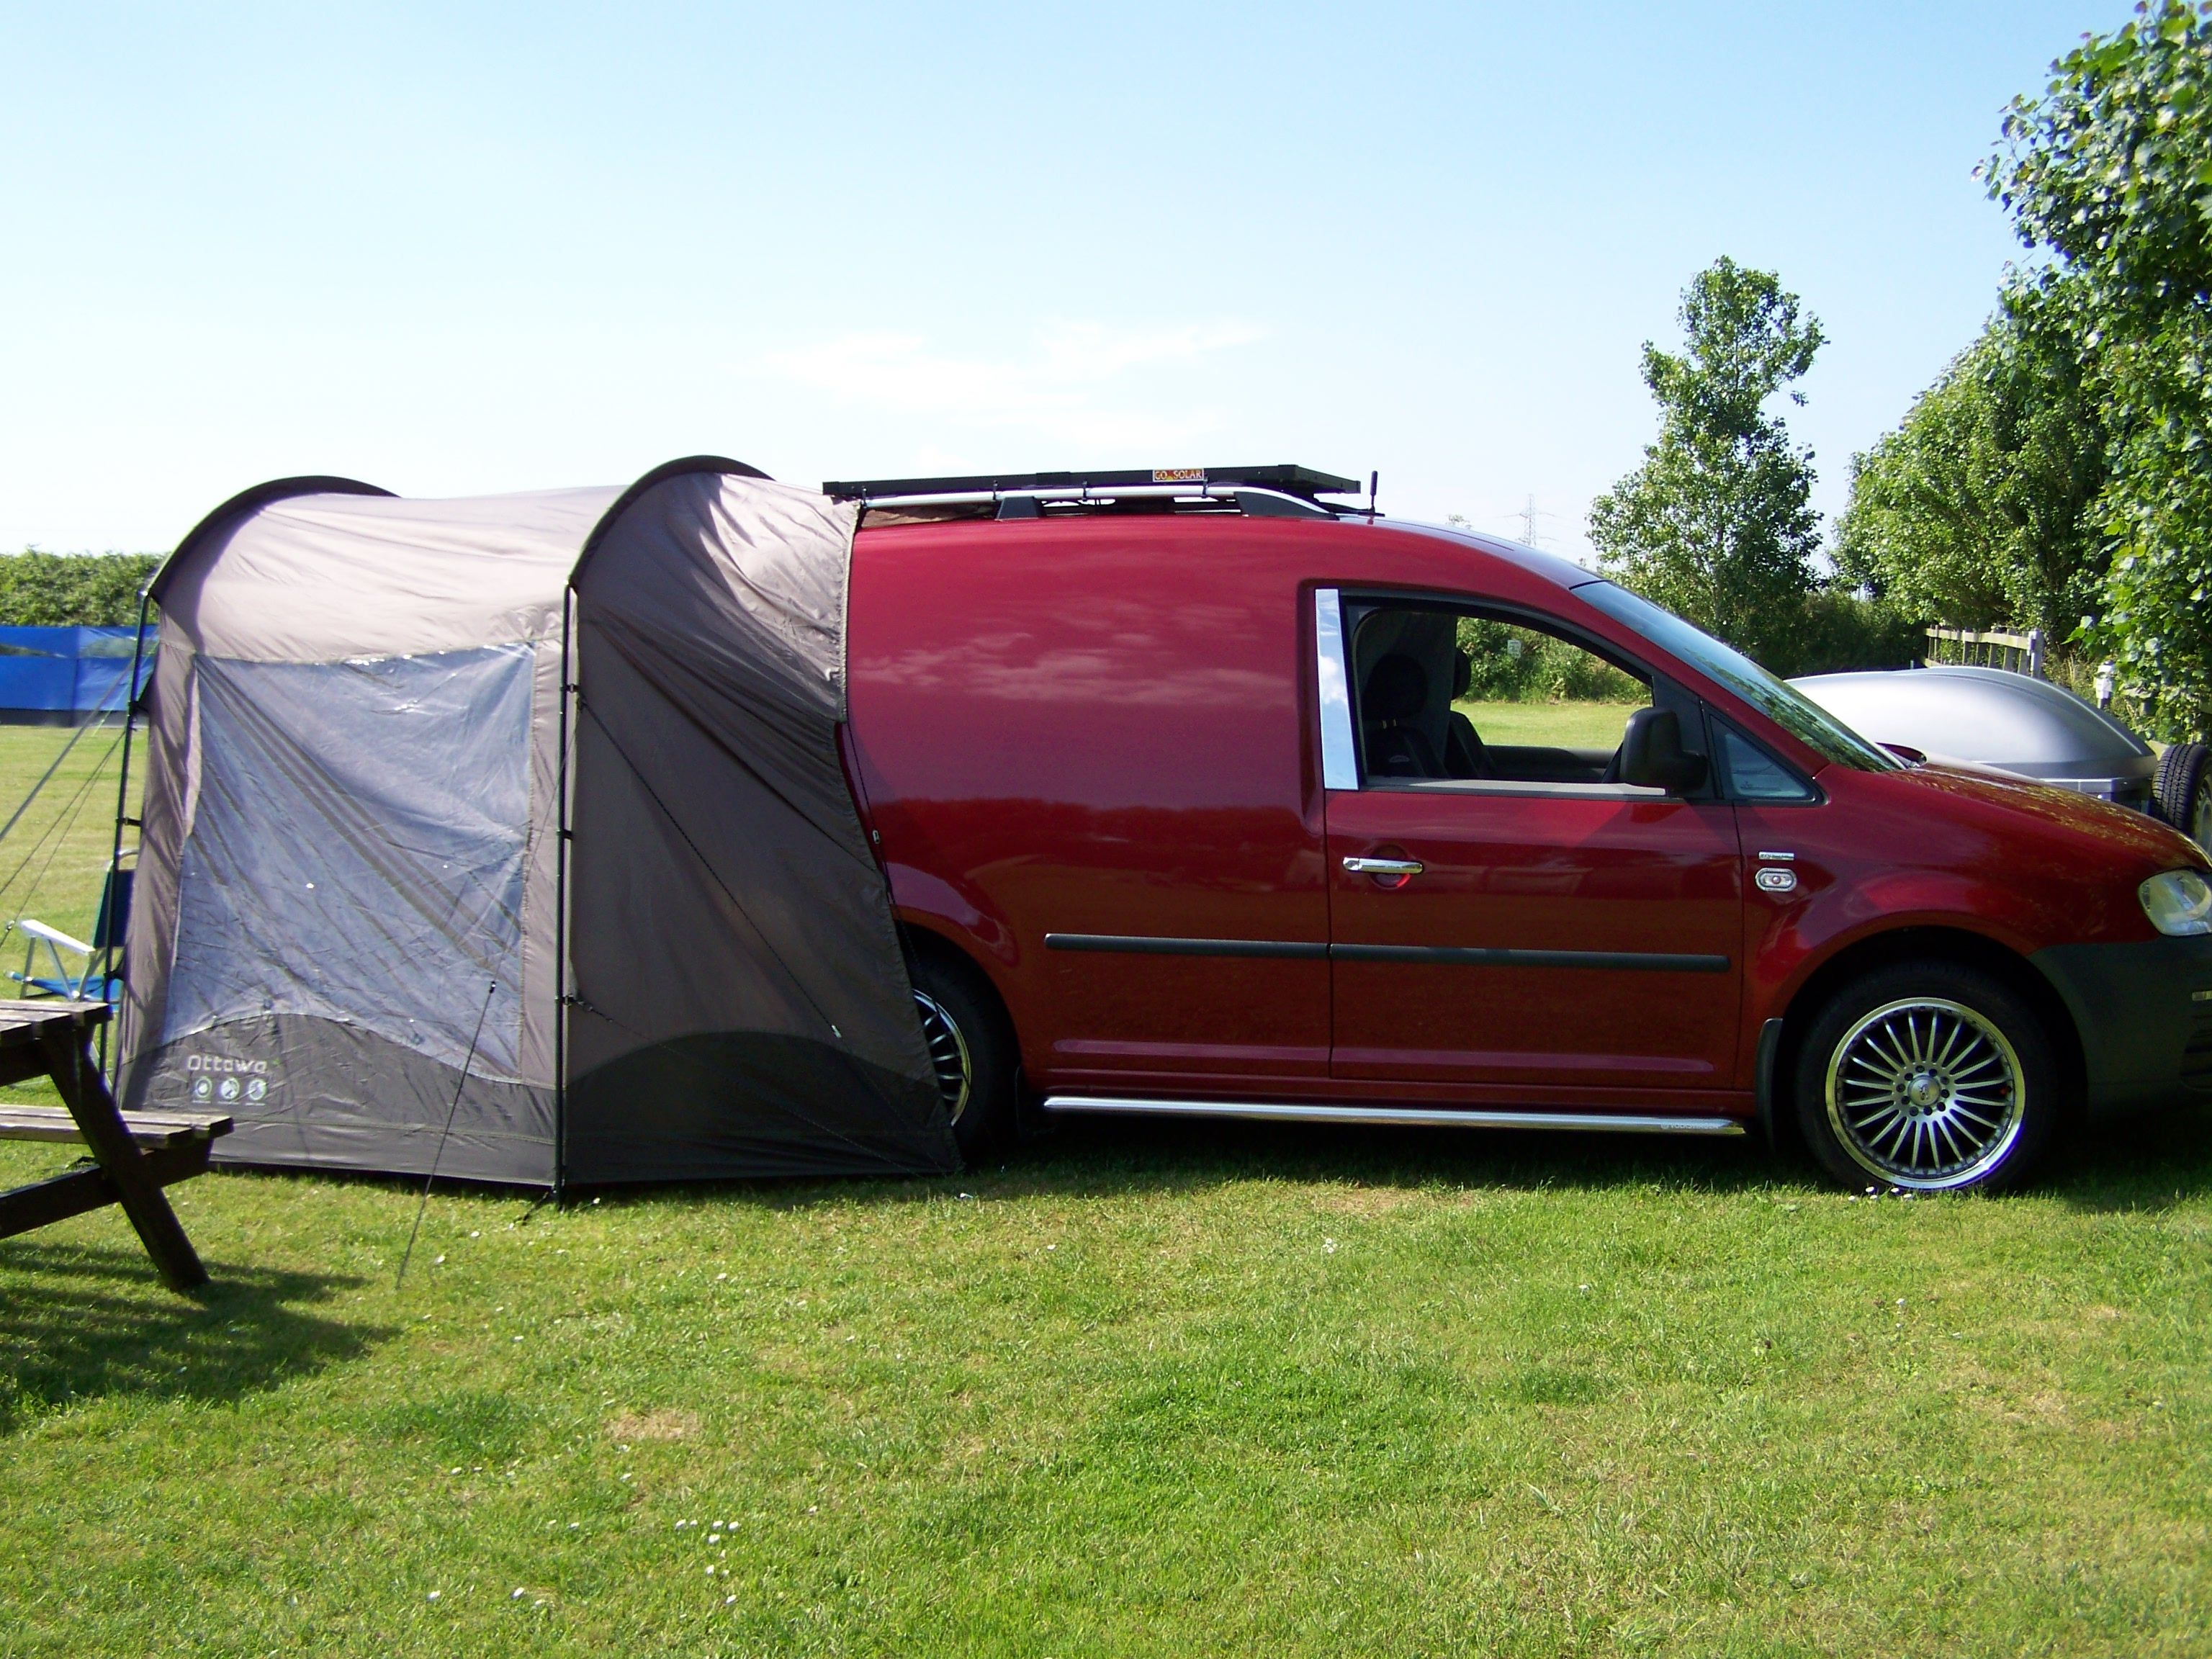 VW CADDY SOLAR CAMPER The Size Of Awning Is 3 Metres X 2 1